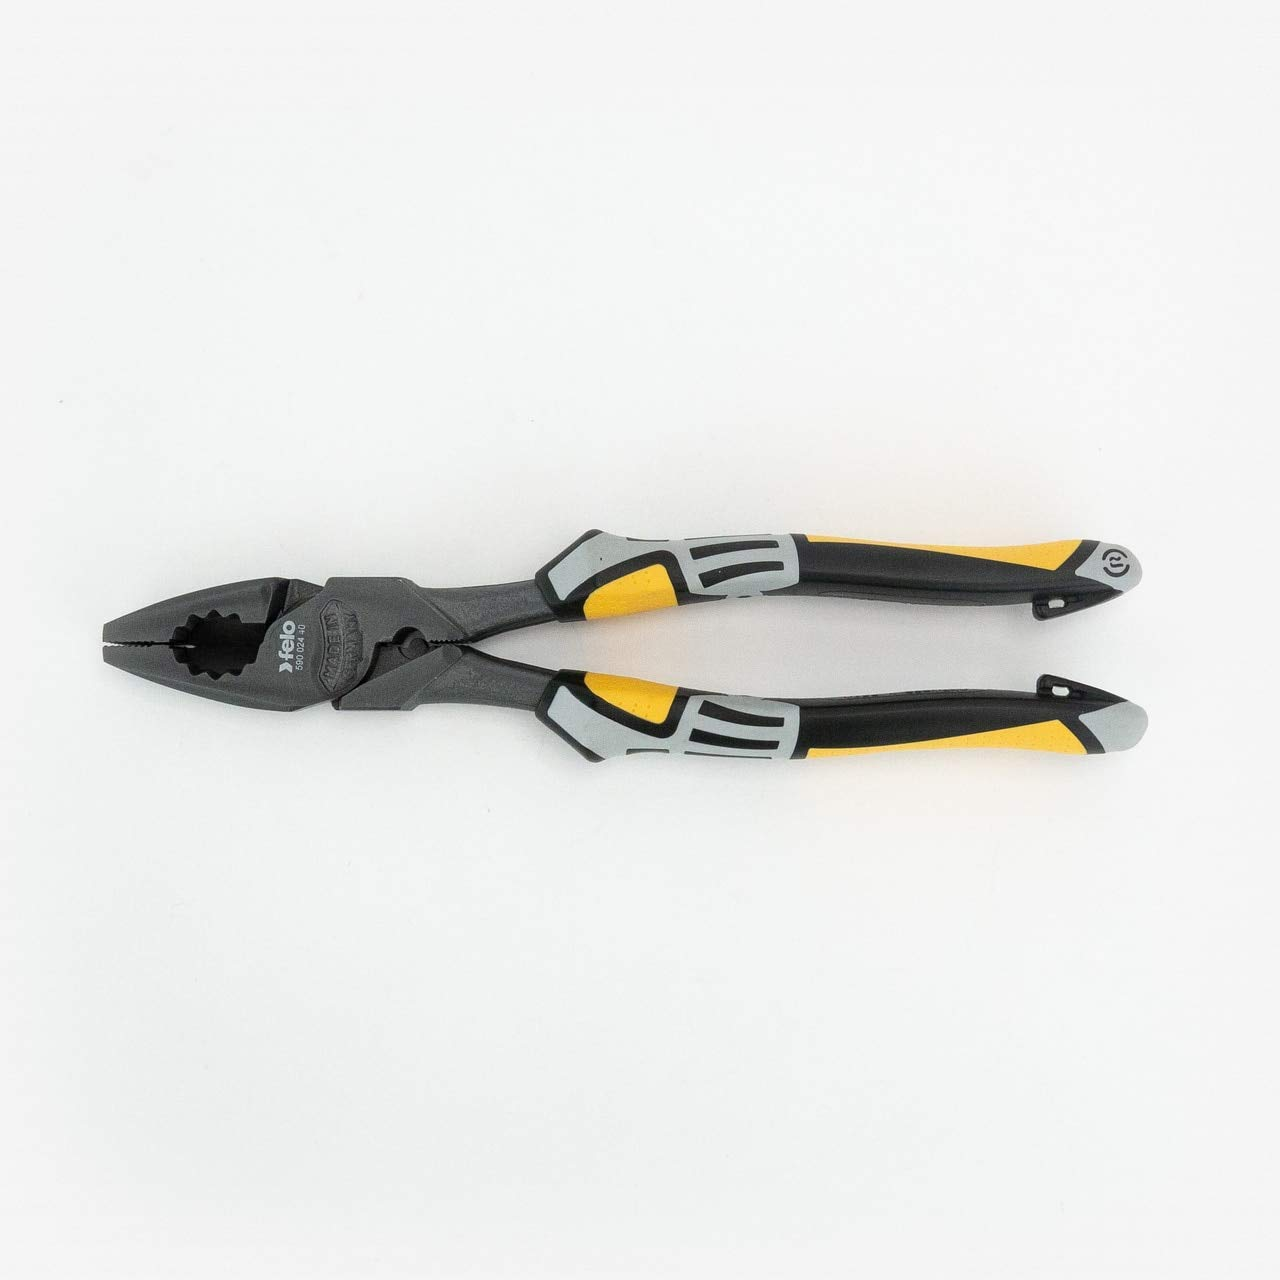 Felo 0715763817 High Leverage Linesman Pliers, 9-1/2'', (1per Pack) by Felo